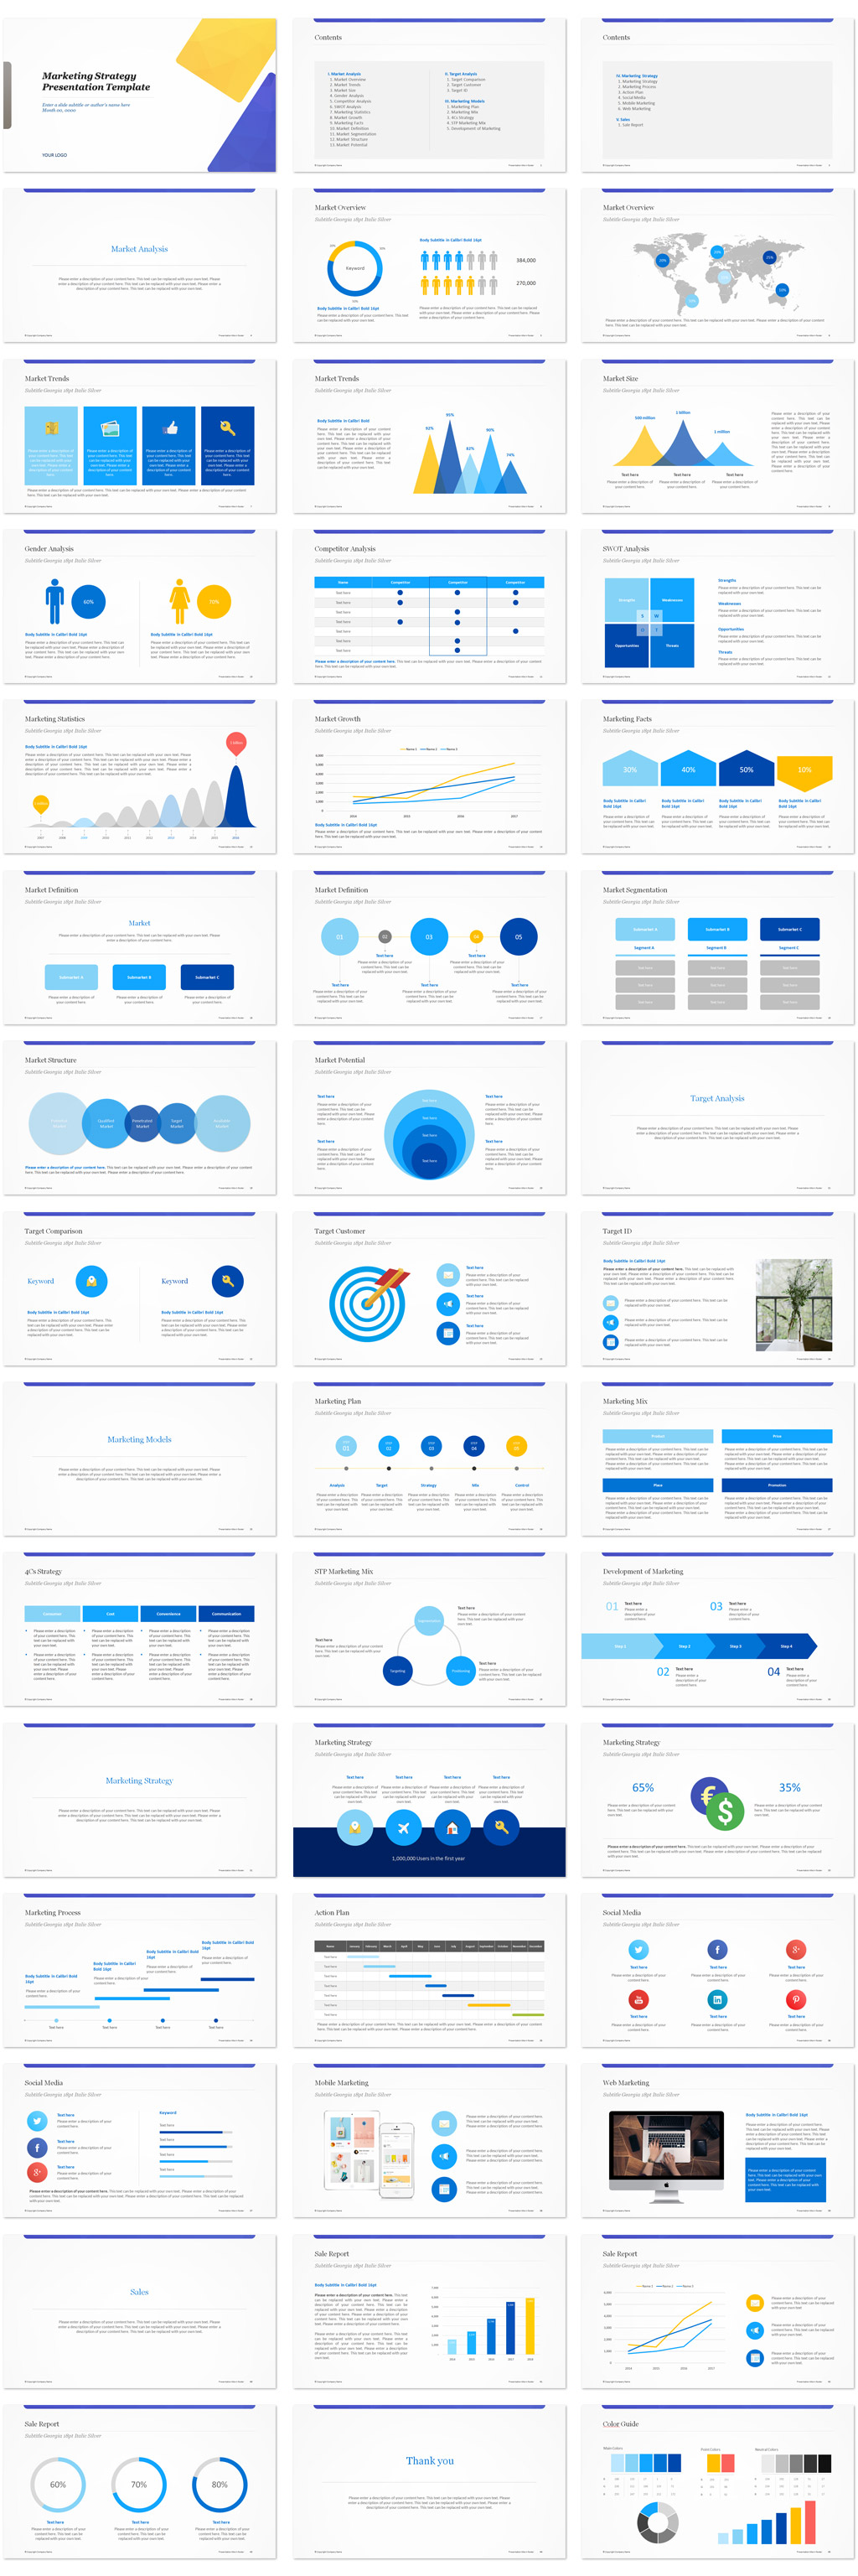 Marketing Strategy PowerPoint Templates